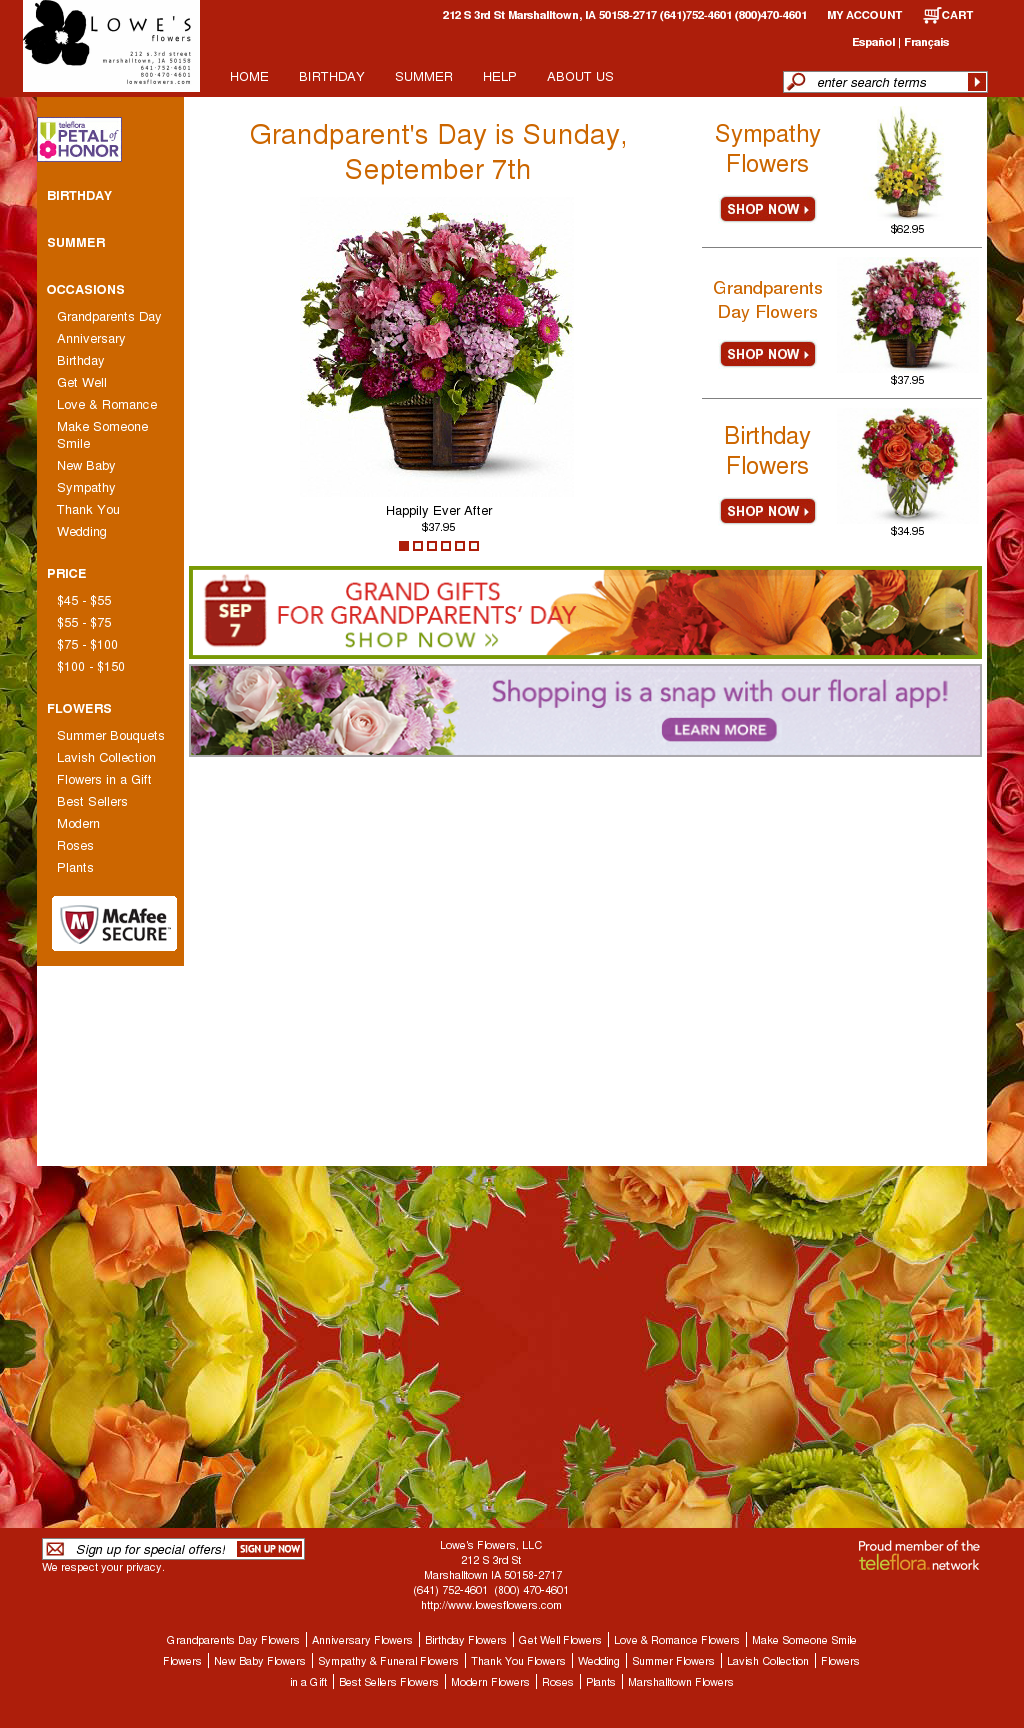 Lowes Flowers Compeors Revenue And